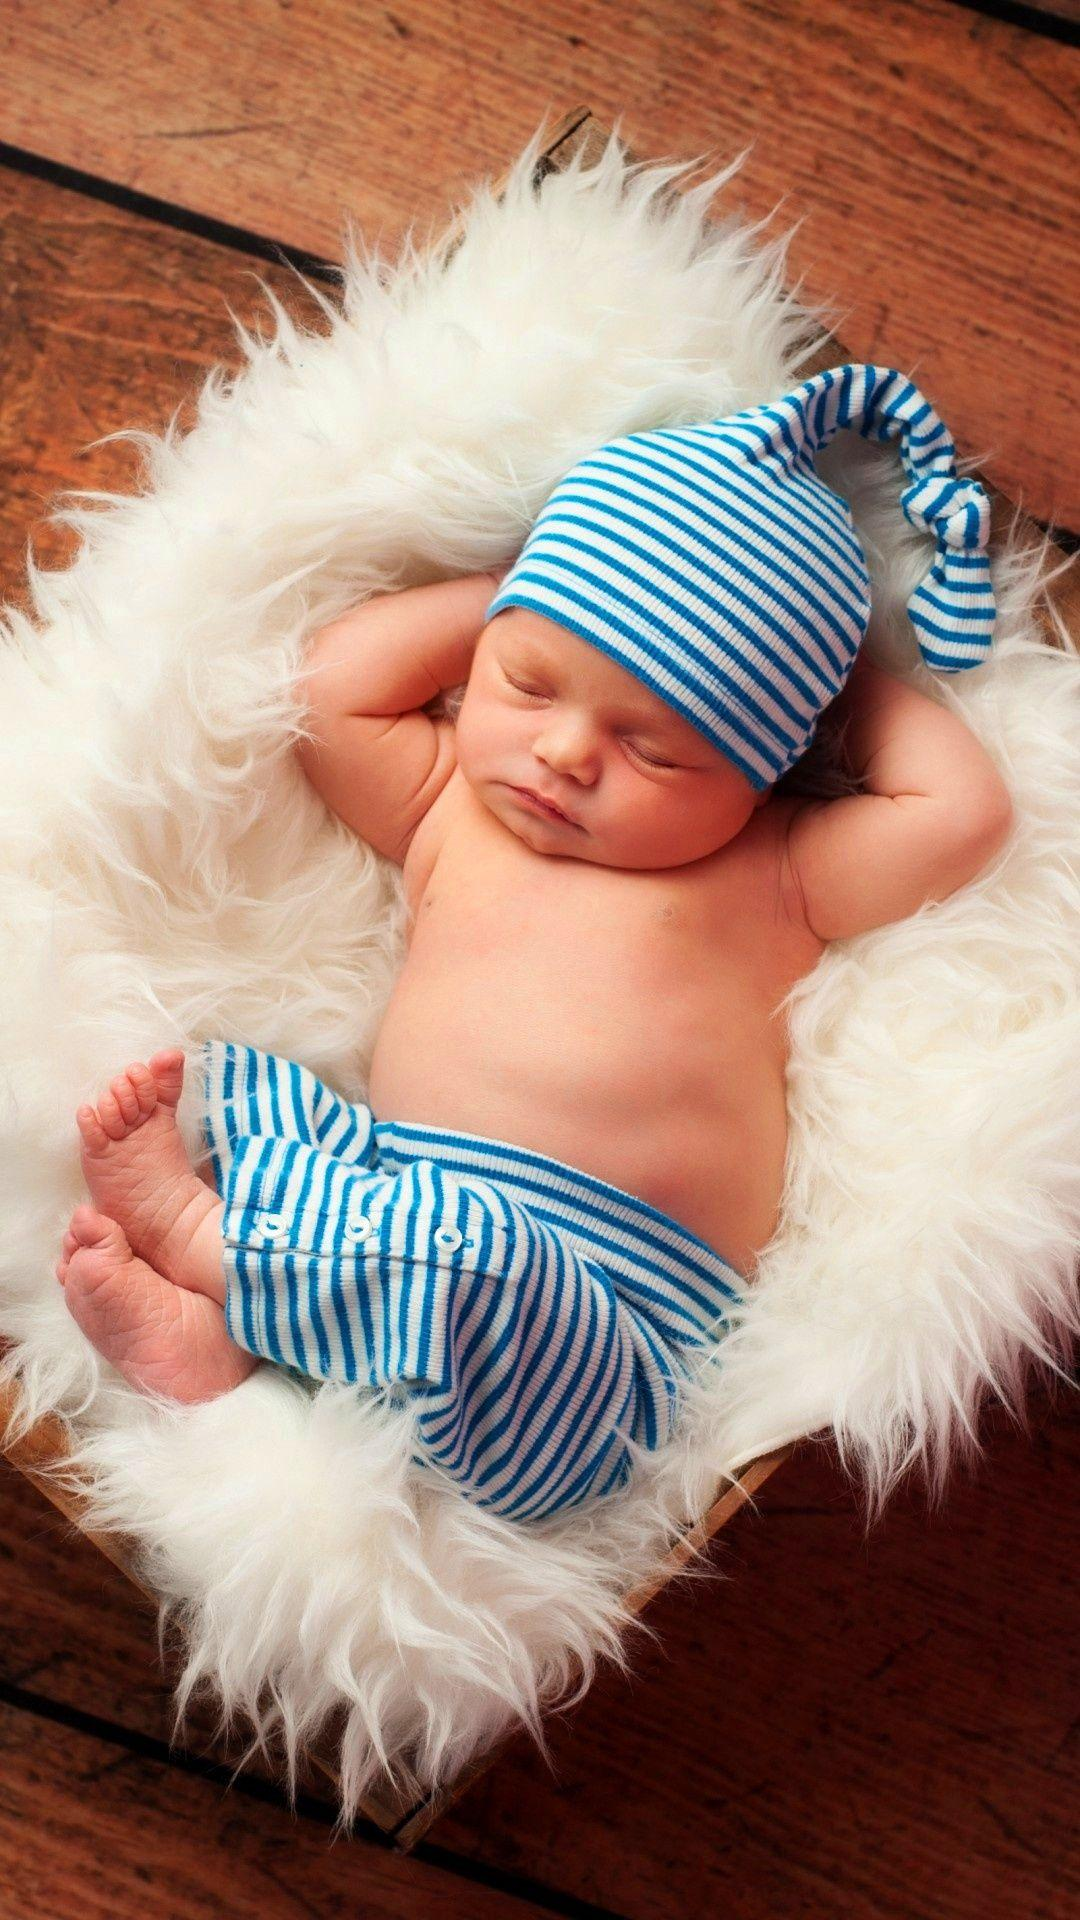 Cool Newborn Baby Sleeping Wallpapers - 1080x1920 - 537876